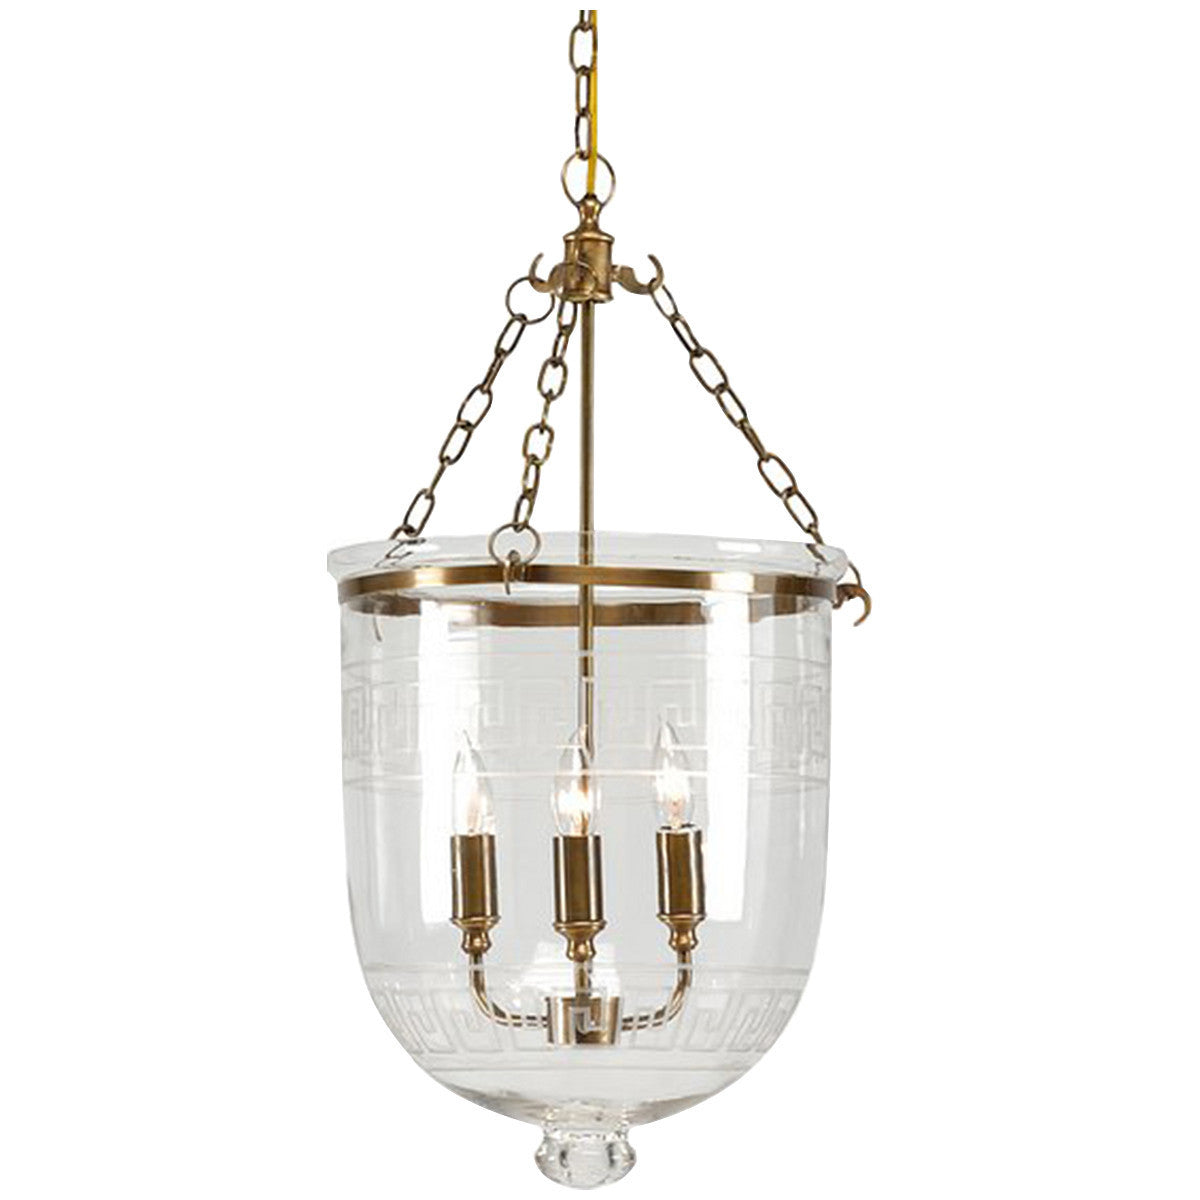 Ceiling lights gore dean home chelsea house antique brass with glass decor pendant gdh the decorators department store arubaitofo Image collections